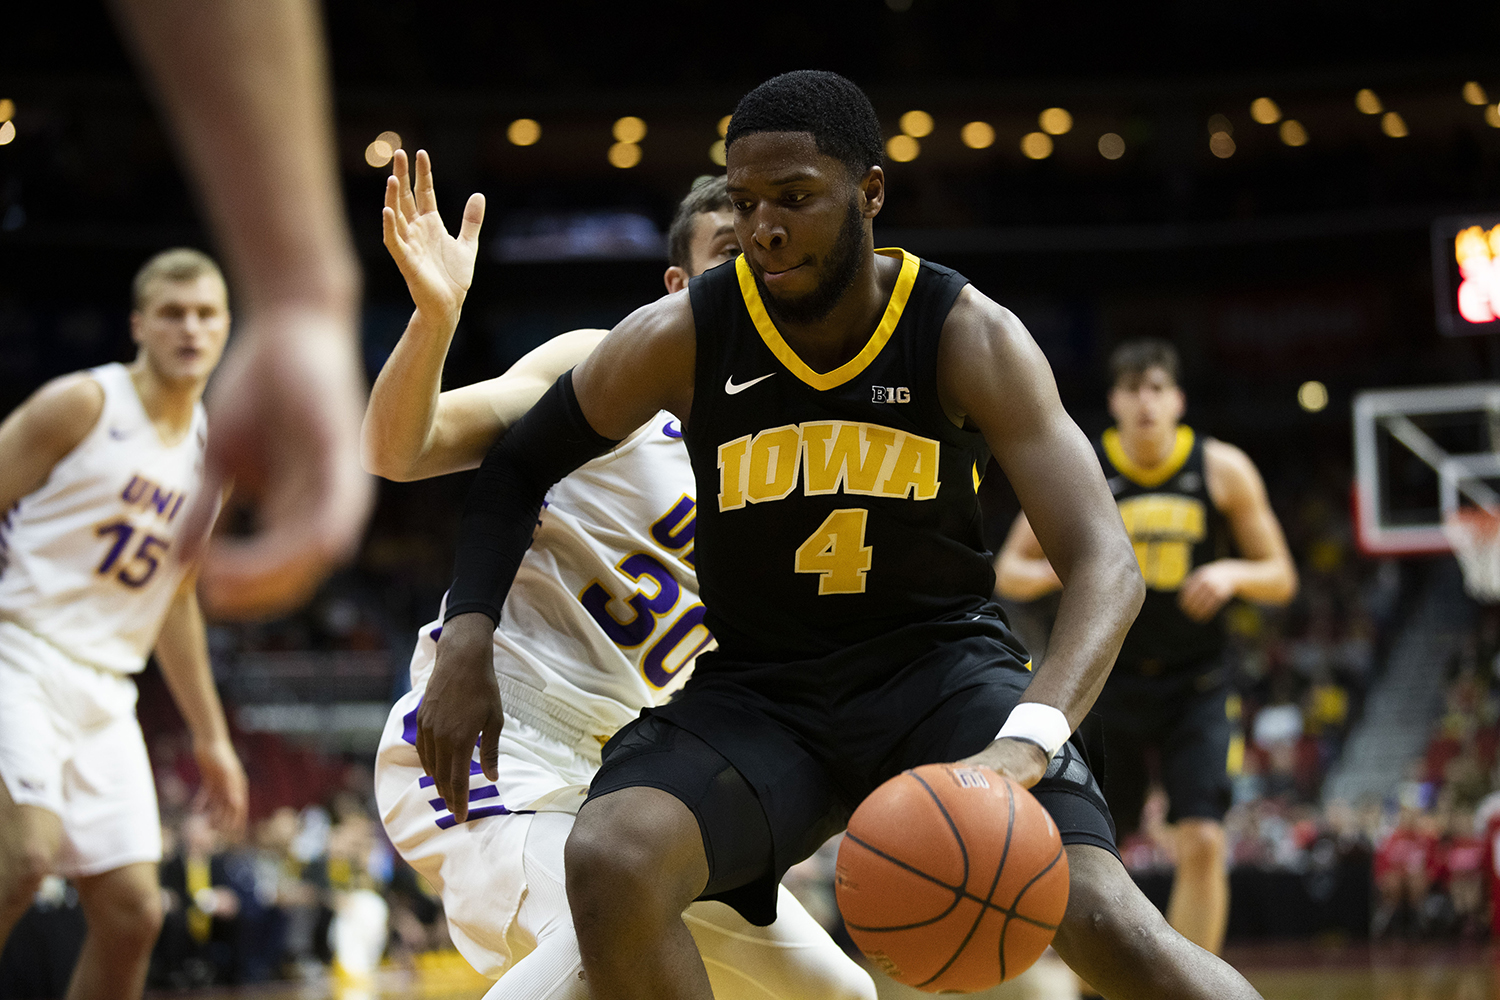 Iowa%27s+Isaiah+Moss+drives+to+the+hoop+during+the+Iowa%2FUNI+men%27s+basketball+game+at+Wells+Fargo+Arena+in+Des+Moines+on+Saturday%2C+Dec.+15%2C+2018.+The+Hawkeyes+defeated+the+Panthers%2C+77-54.+